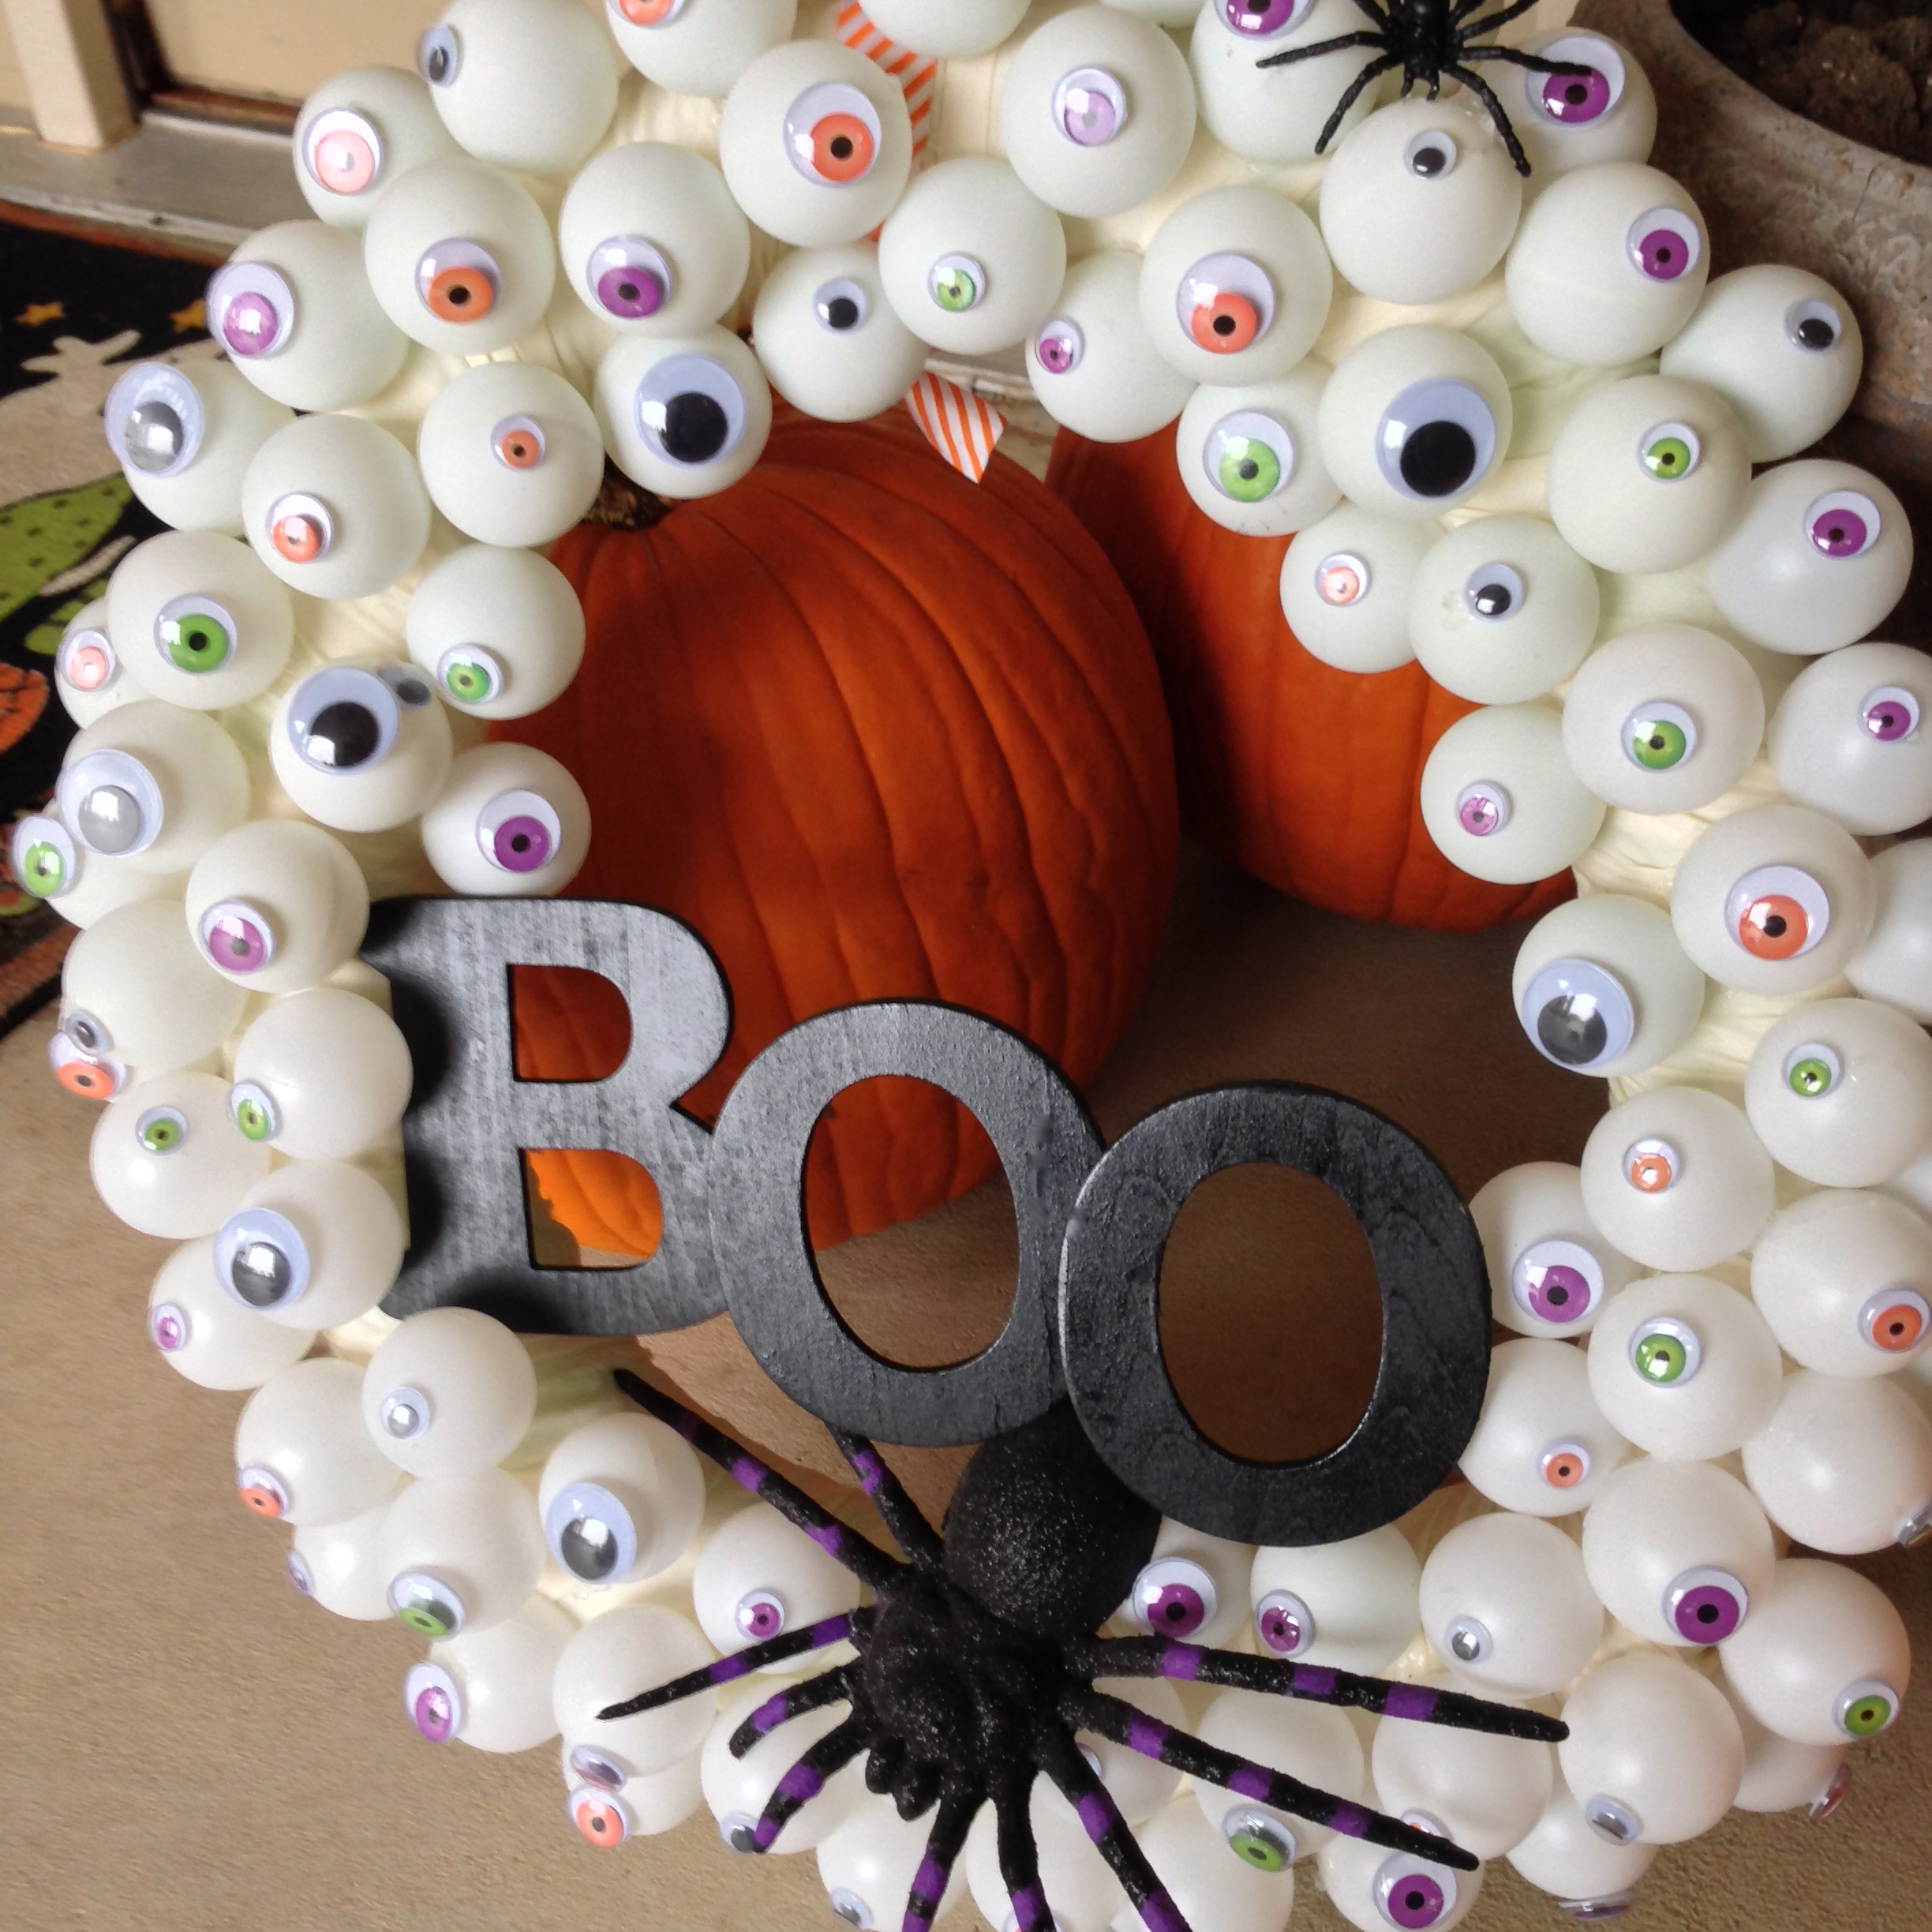 13 AMAZING dollar store Halloween decorations ideas, fall halloween decorations DIY, outdoor halloween decorations DIY ideas - Looking for the BEST outdoor Halloween decorations ideas? In this post, I will SHOW you stunning outdoor Halloween decorations DIY ideas, simple DIY Halloween decorations ideas, cheap and easy outdoor Halloween decorations DIY ideas, Fall Halloween decorations DIY ideas, best outdoor Halloween ideas, dollar store Halloween decor ideas, and more. #halloween #diy #decor #halloweendecorations #DIYideas #homedecor #Halloweendecor #falldecor #falldecorations